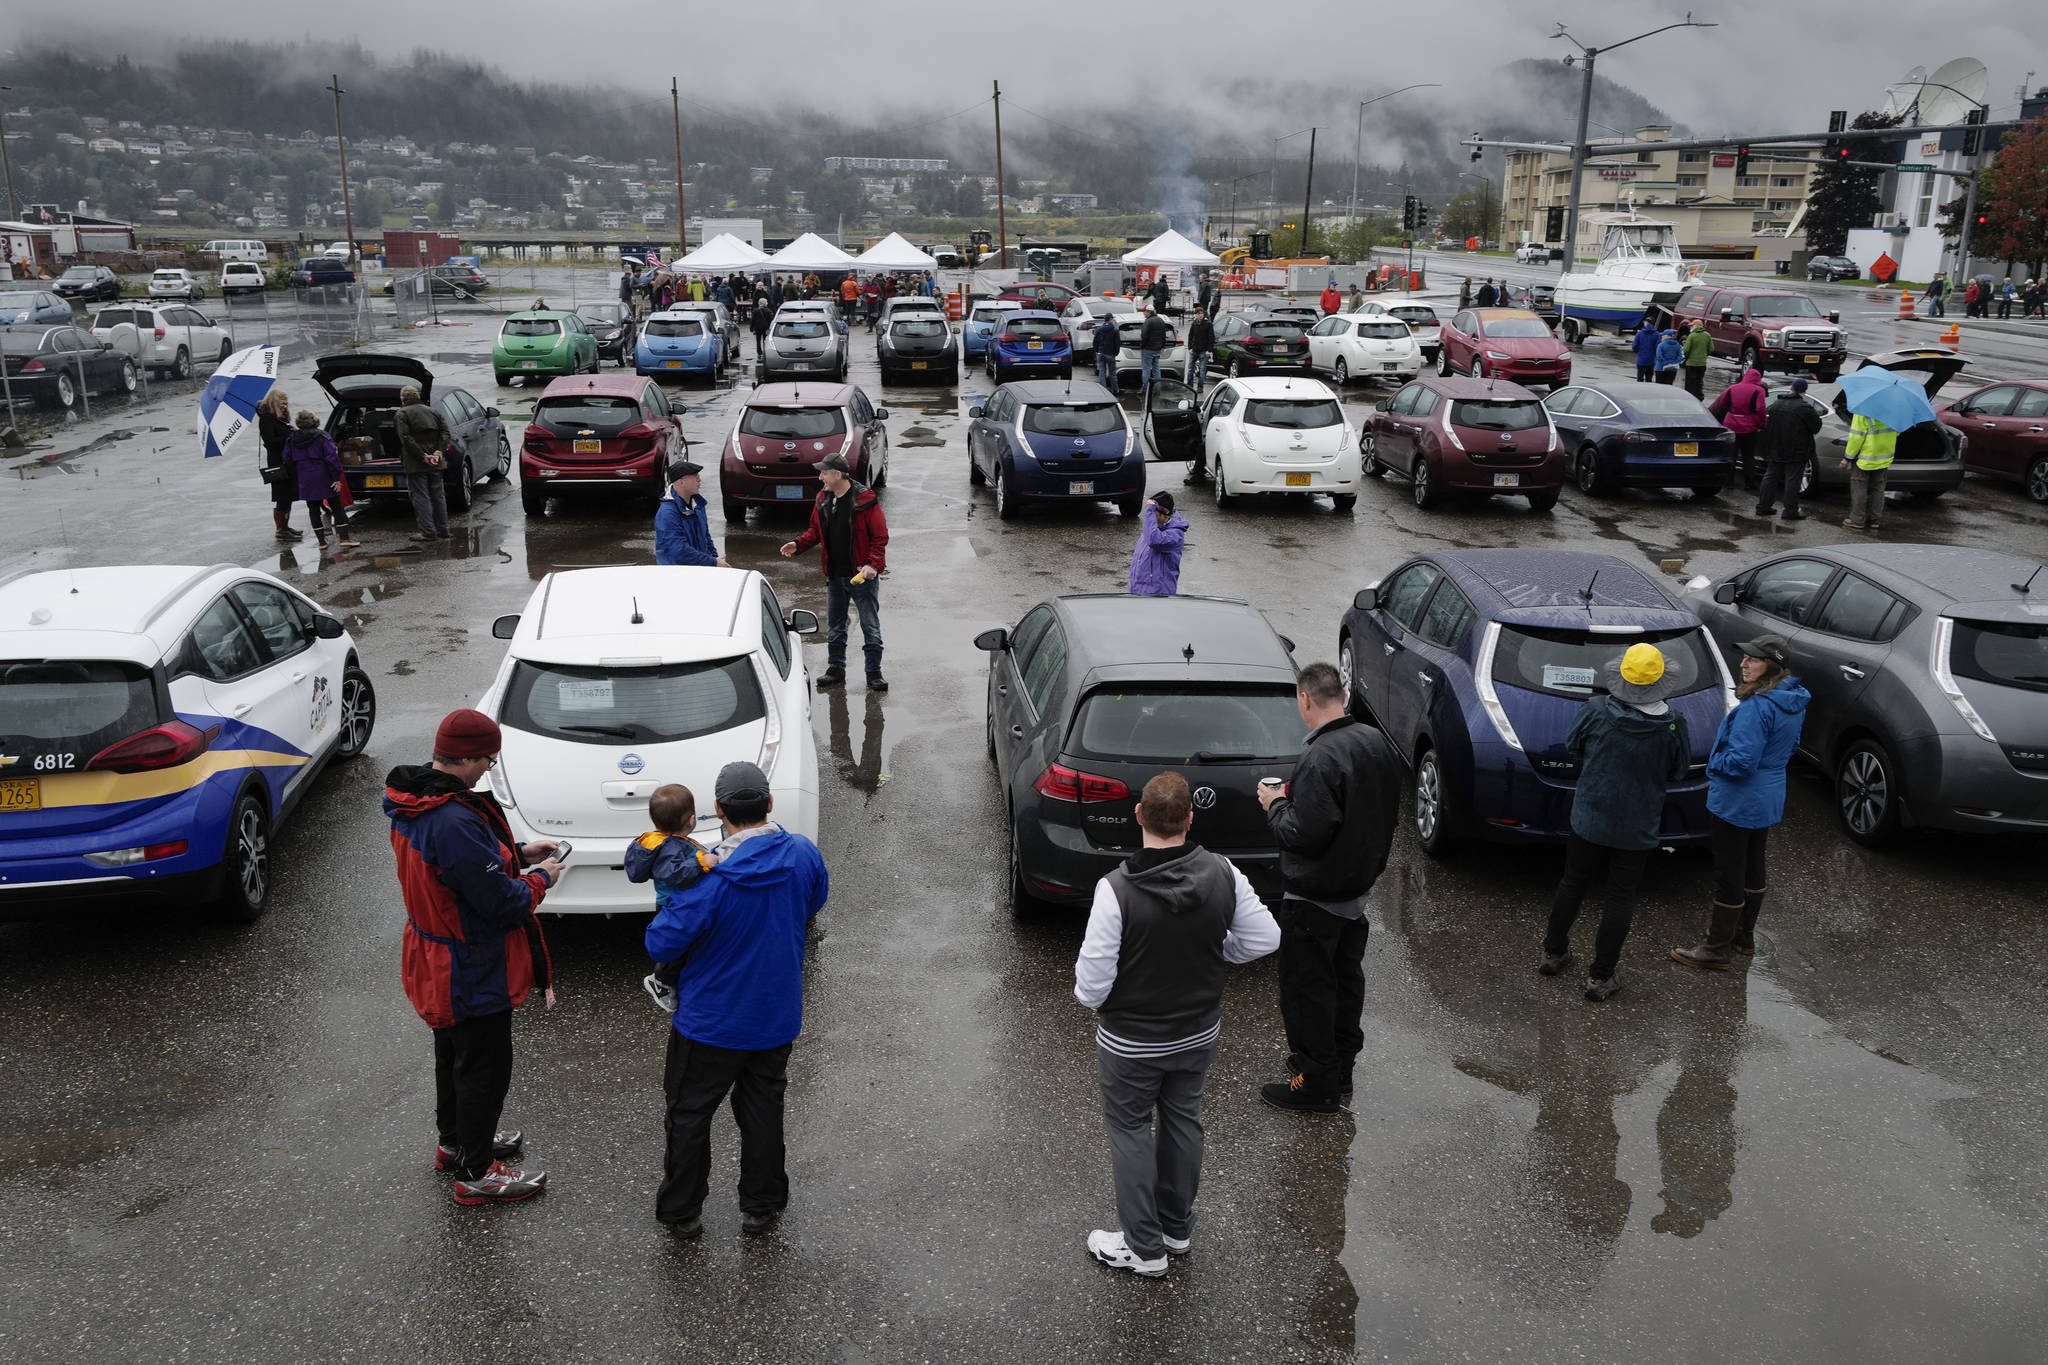 Juneau residents meet for the Sixth Annual Electric Vehicle Juneau Roundup on Saturday, Sept. 21, 2019. (Michael Penn | Juneau Empire)